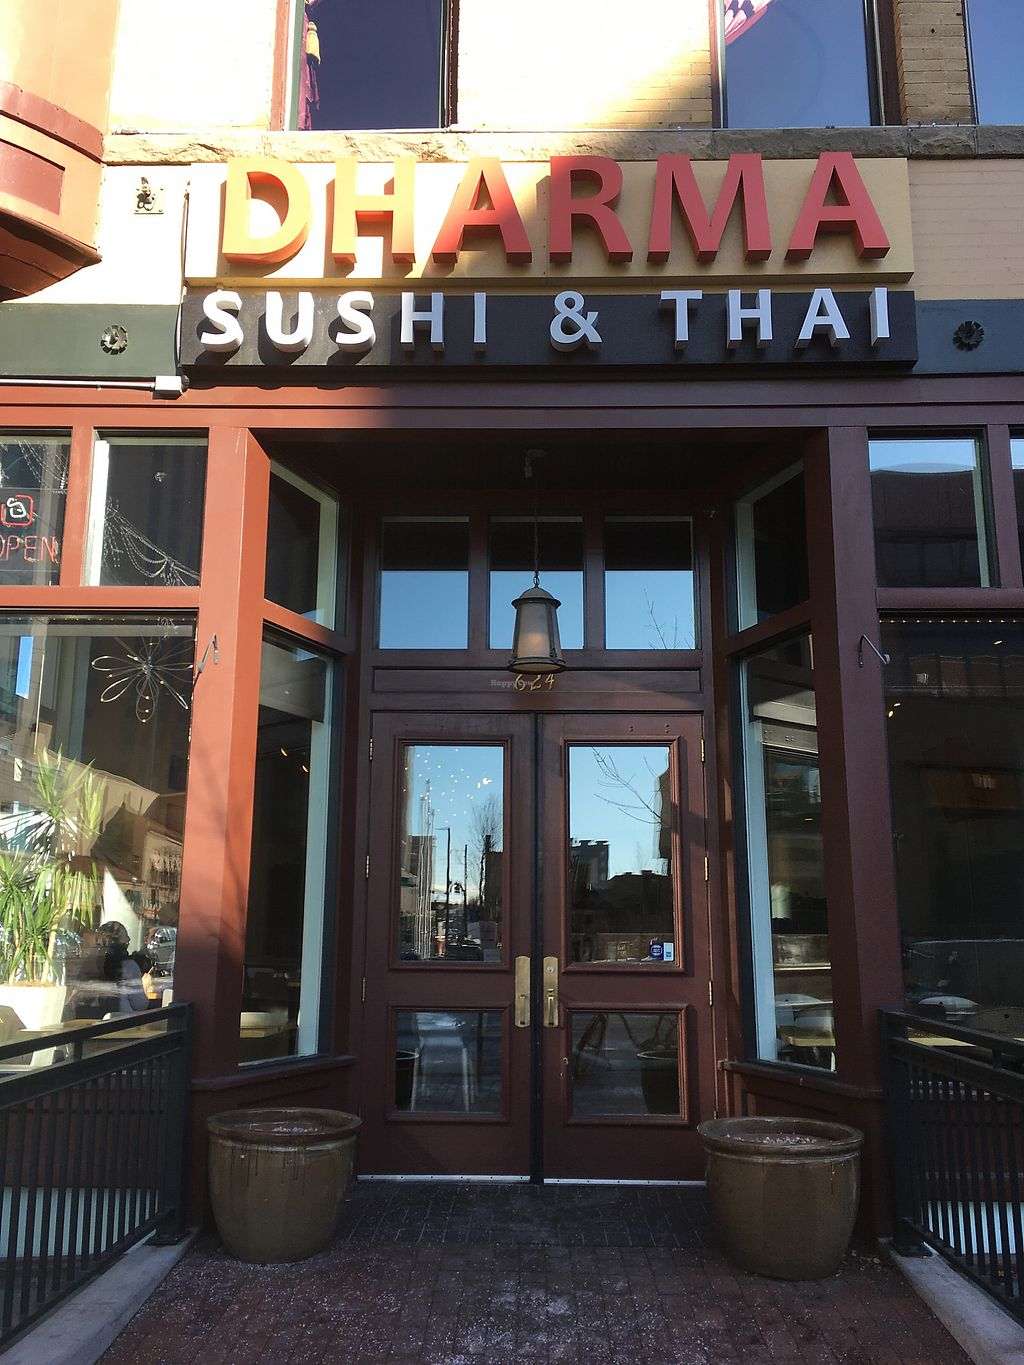 """Photo of Dharma Sushi & Thai  by <a href=""""/members/profile/rdfogelsong%40gmail.com"""">rdfogelsong@gmail.com</a> <br/>Outside <br/> December 16, 2017  - <a href='/contact/abuse/image/73928/336239'>Report</a>"""